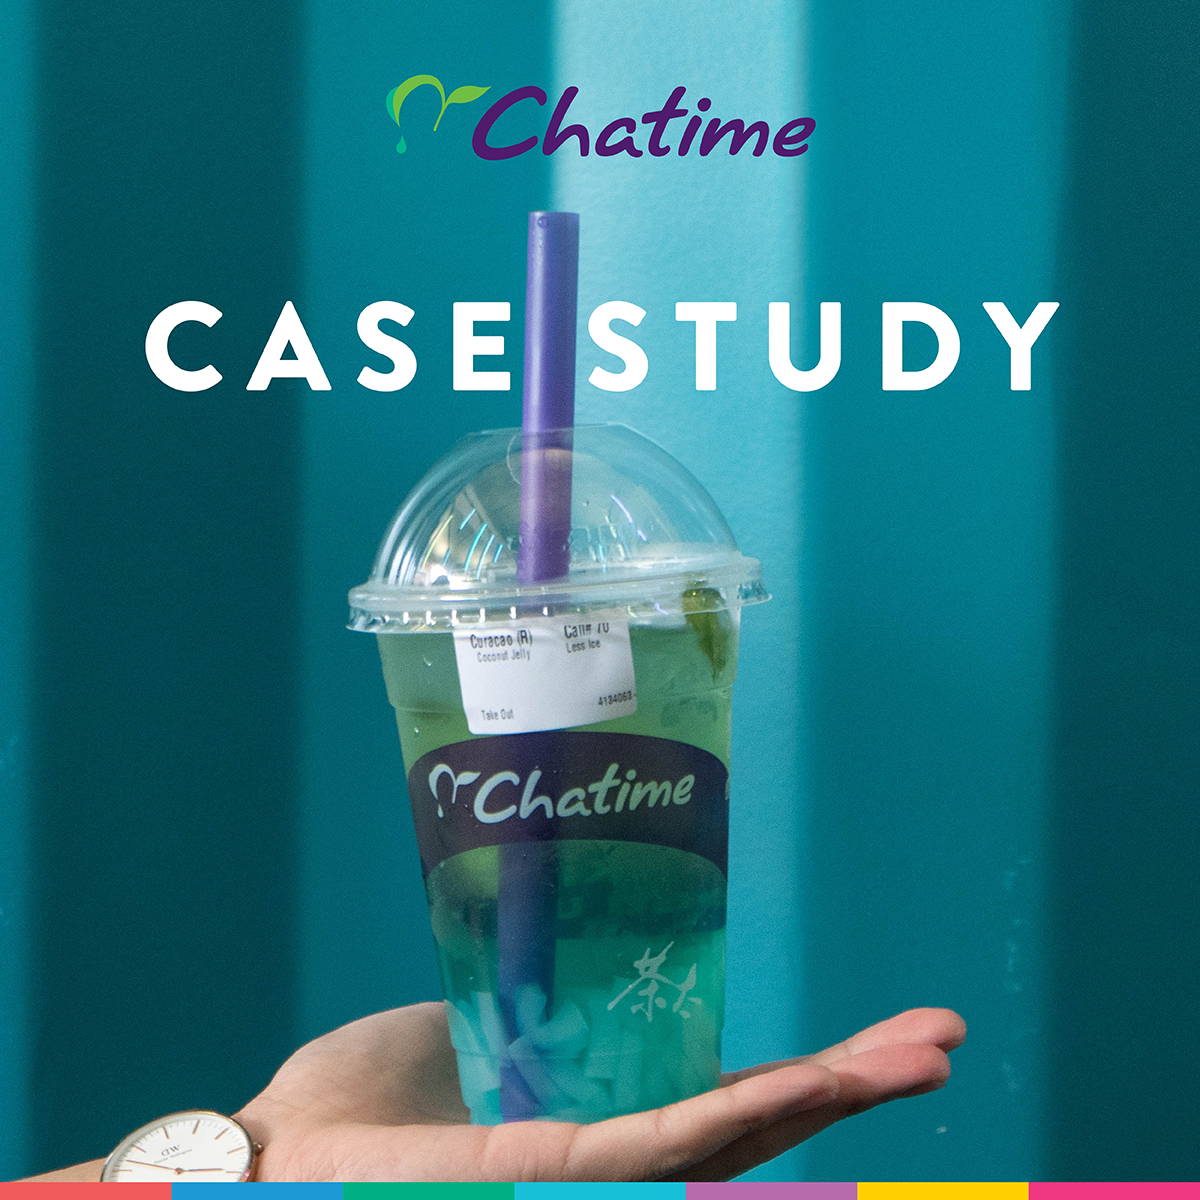 Chatime case study